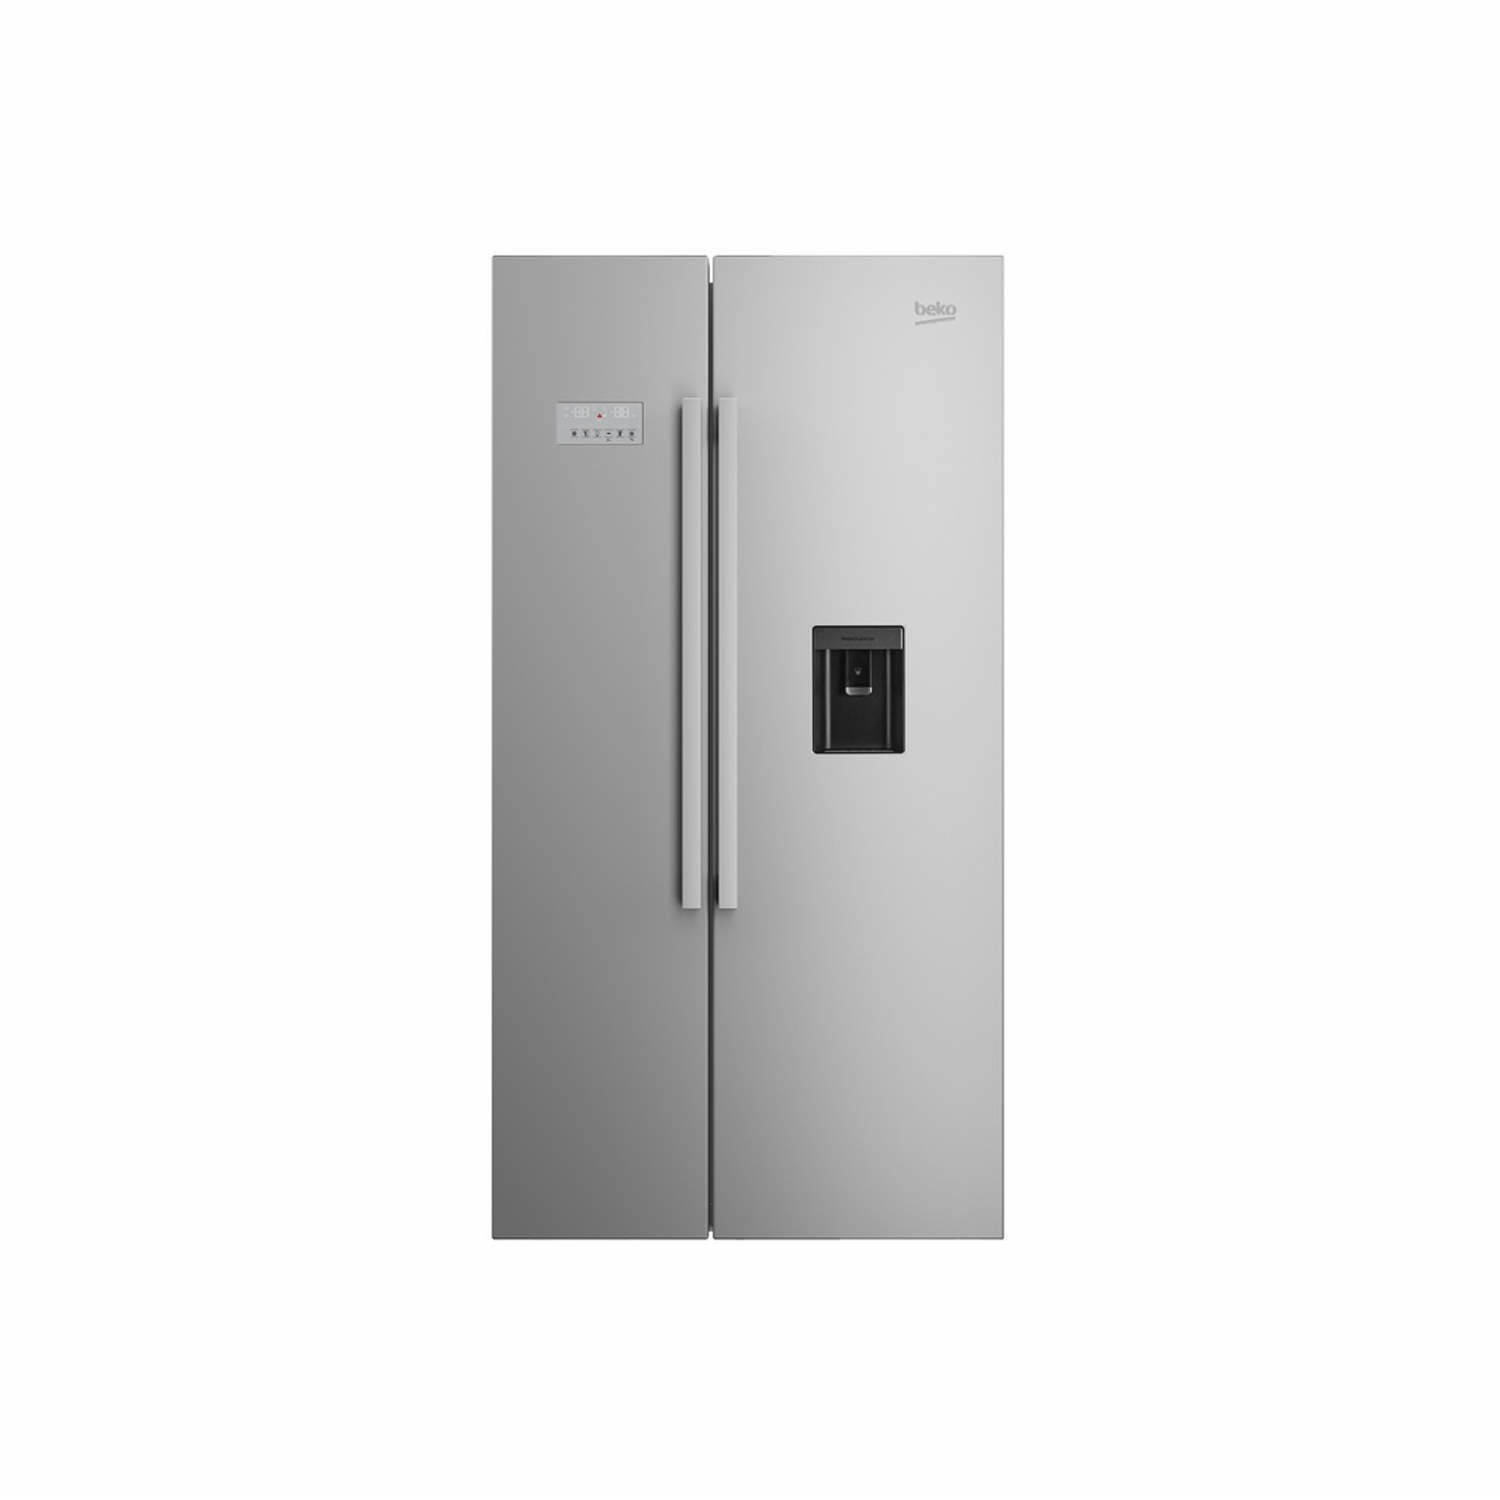 Beko ASD241X Stainless Steel Side By Side Fridge Freezer With Non Plumbed  Water Dispenser